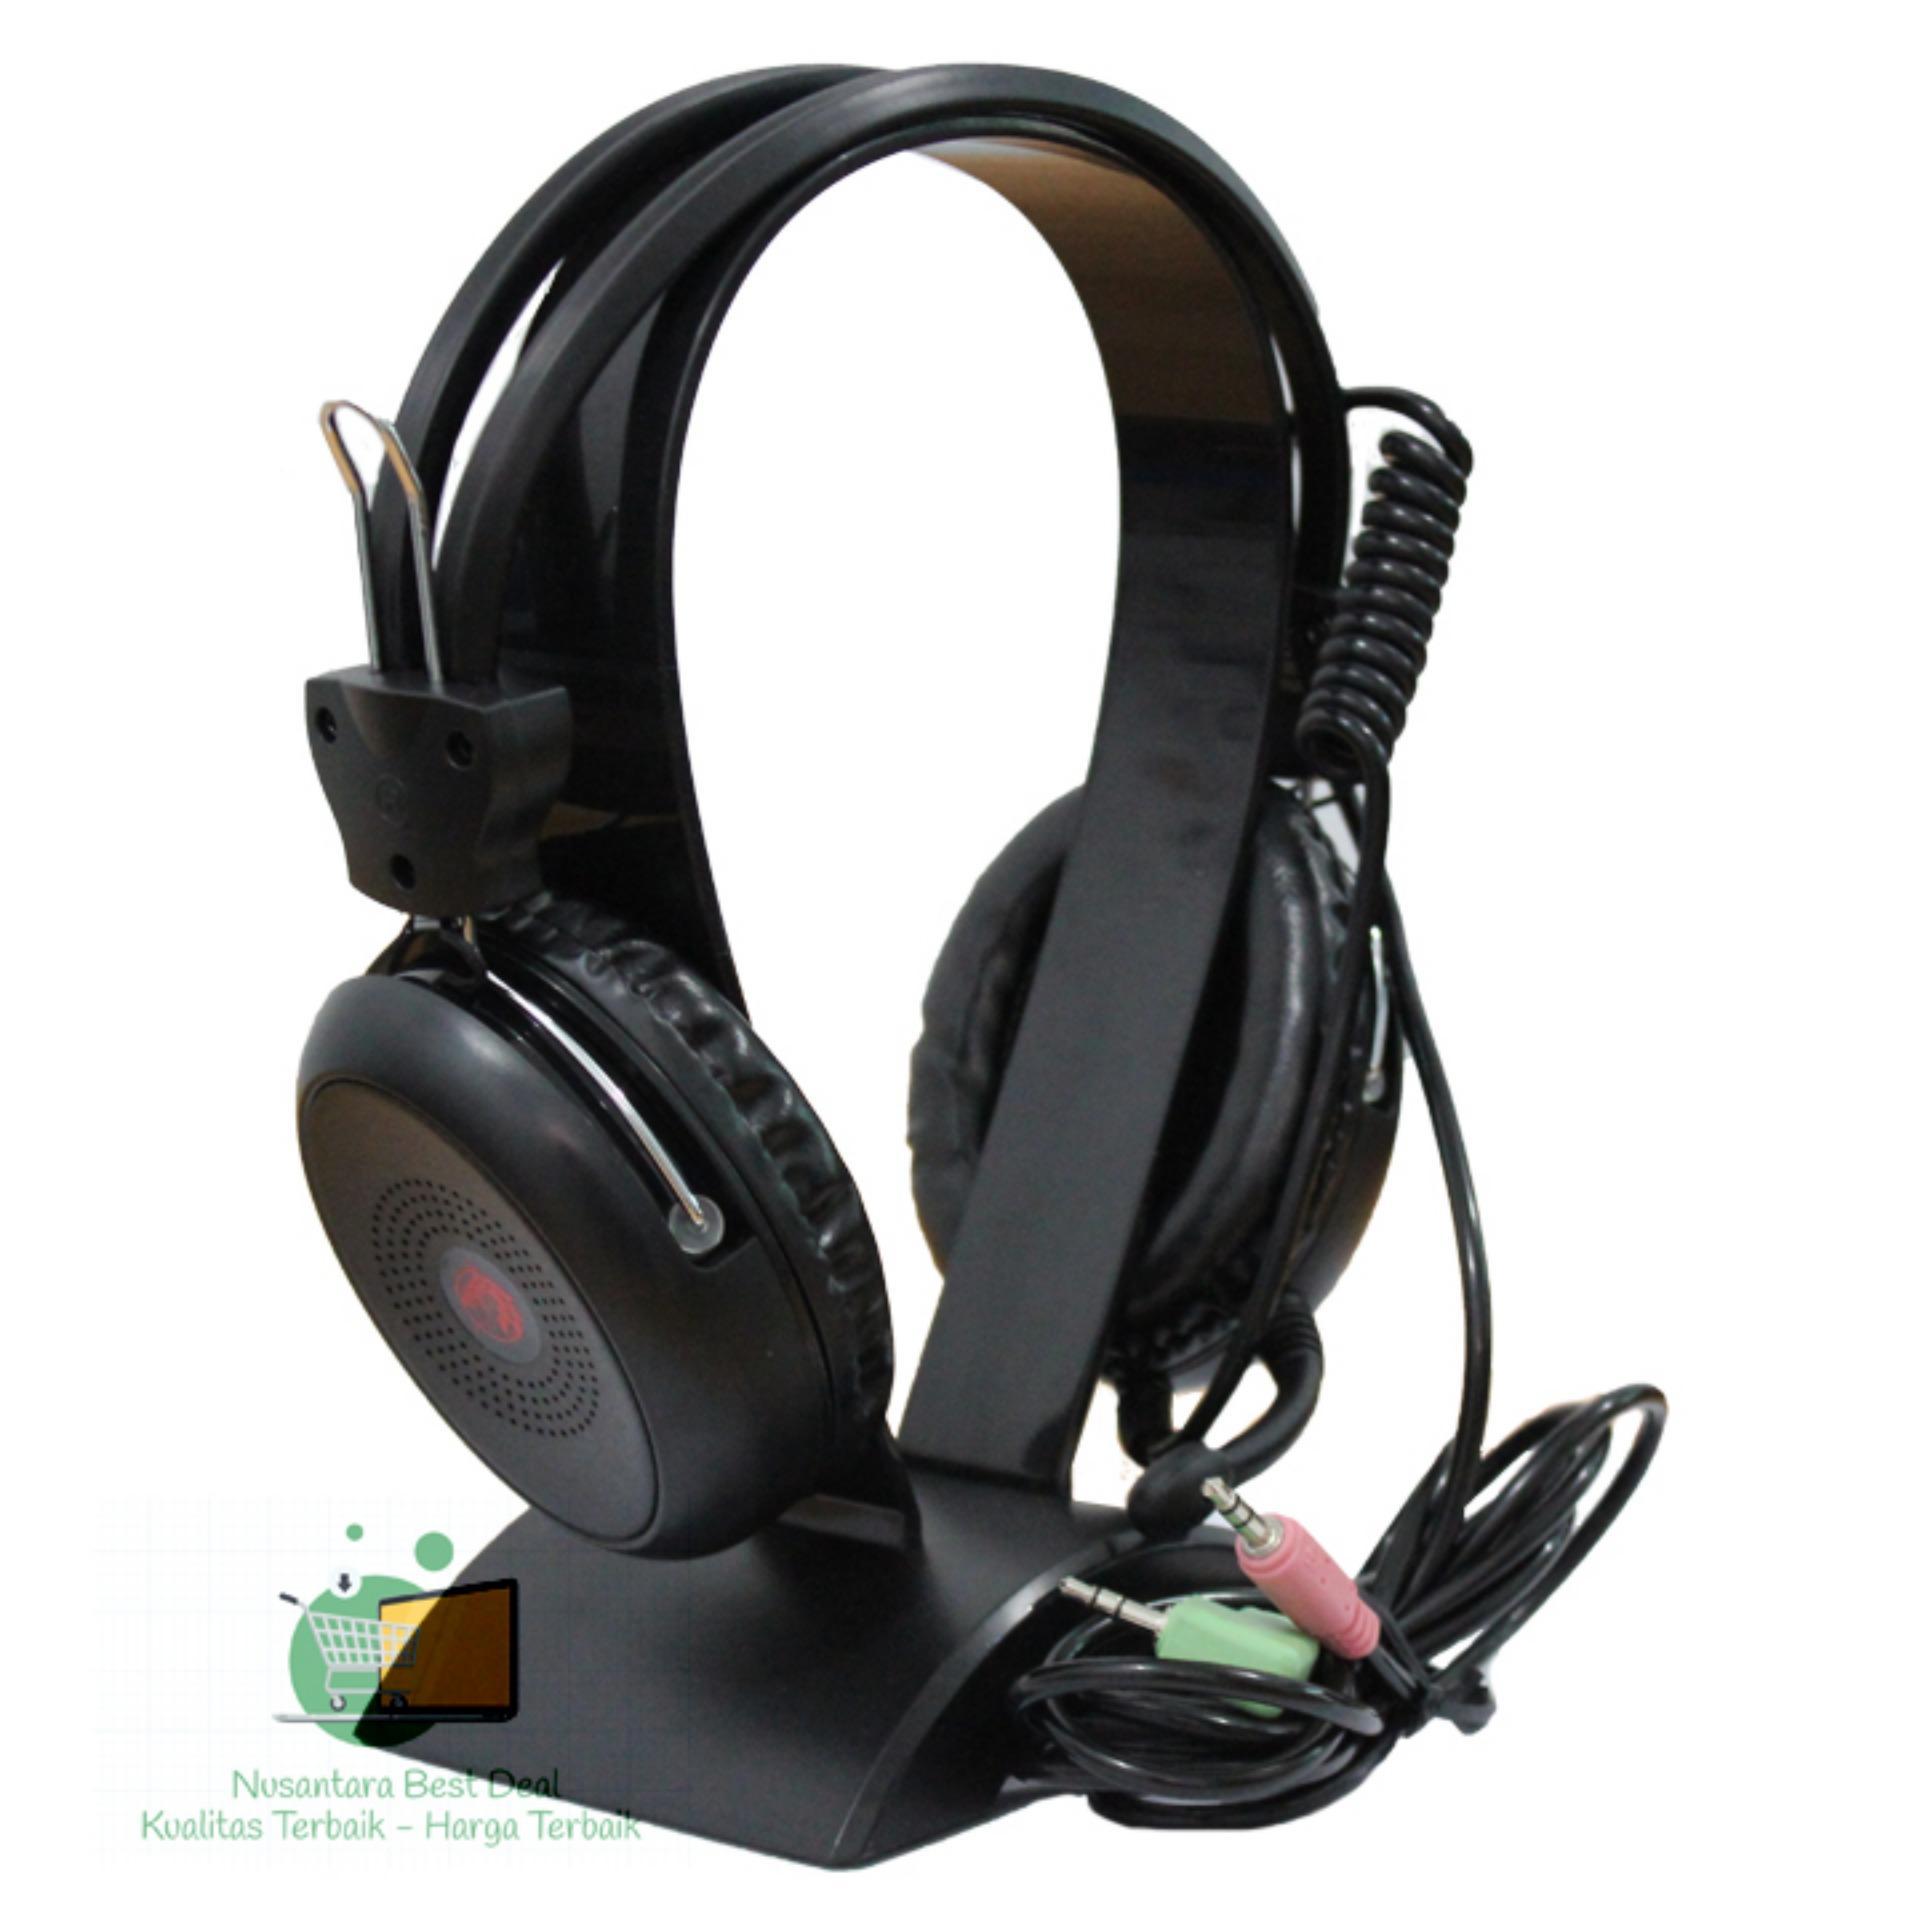 Buy Sell Cheapest Imperion Dragon Tm Best Quality Product Deals Warrior 10 Keyboard Gaming Usb Idr 94000 Idr94000 View Detail Stereo Headset Hs G35 Plutonium Bass Audio Original